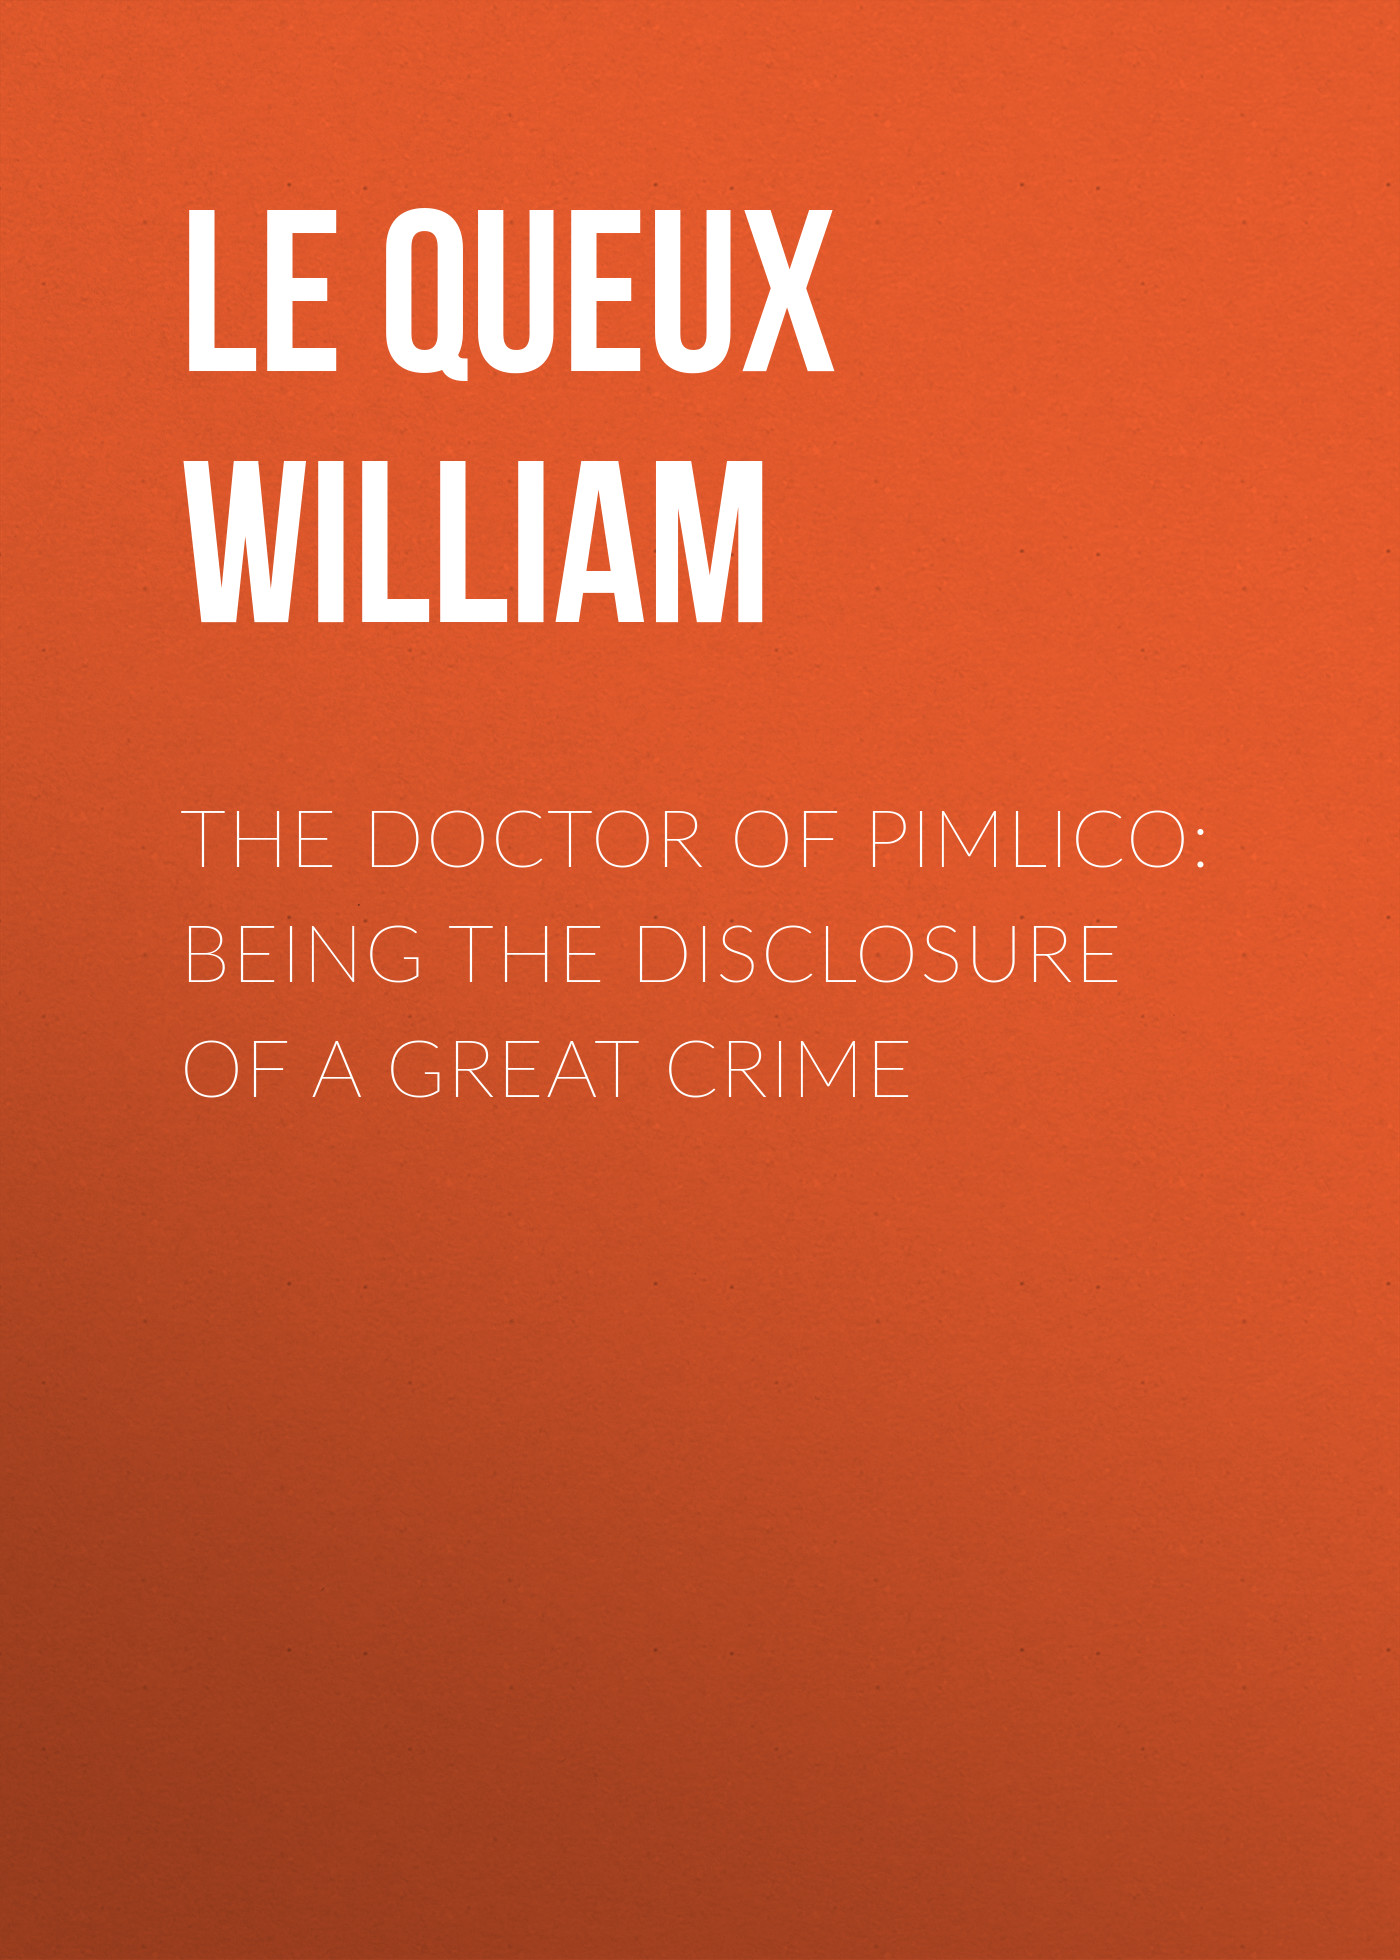 Le Queux William The Doctor of Pimlico: Being the Disclosure of a Great Crime цена и фото